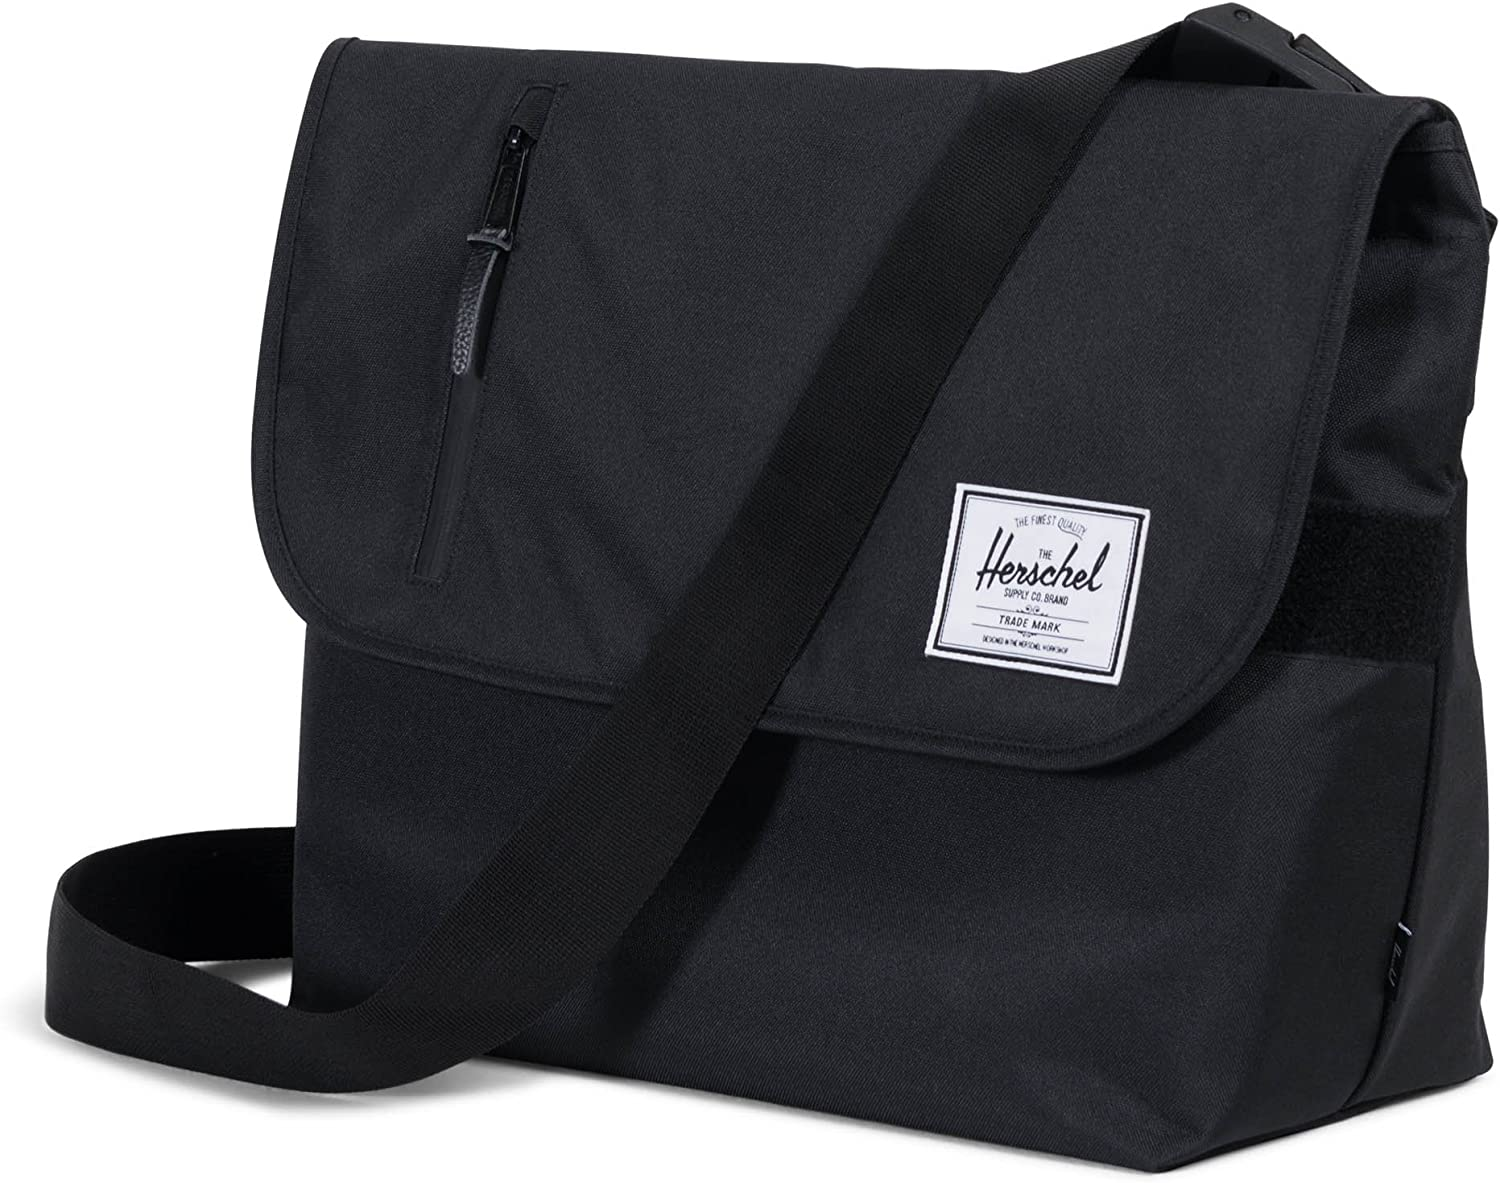 talla /única Raven Crosshatch Bolso bandolera Adulto Unisex Herschel supply Pop Quiz Messenger Bag